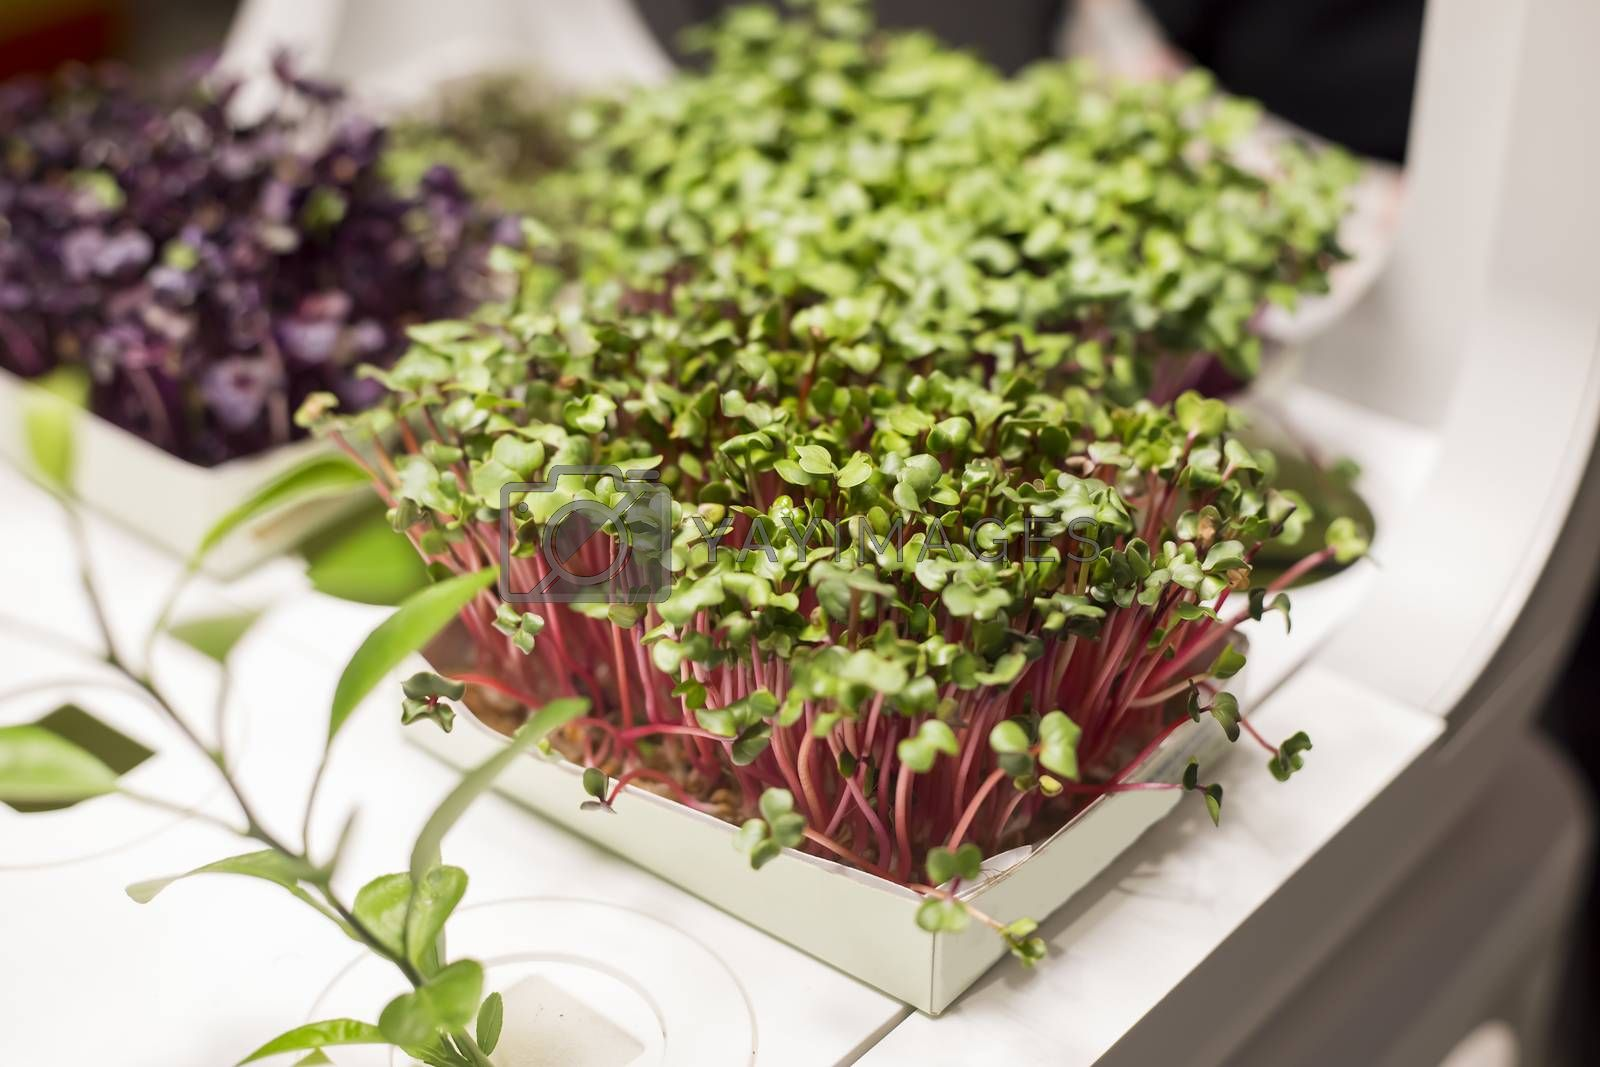 Microgreen sprouts of peas vegetable, growing healthy eating concept at home garden.soft focus